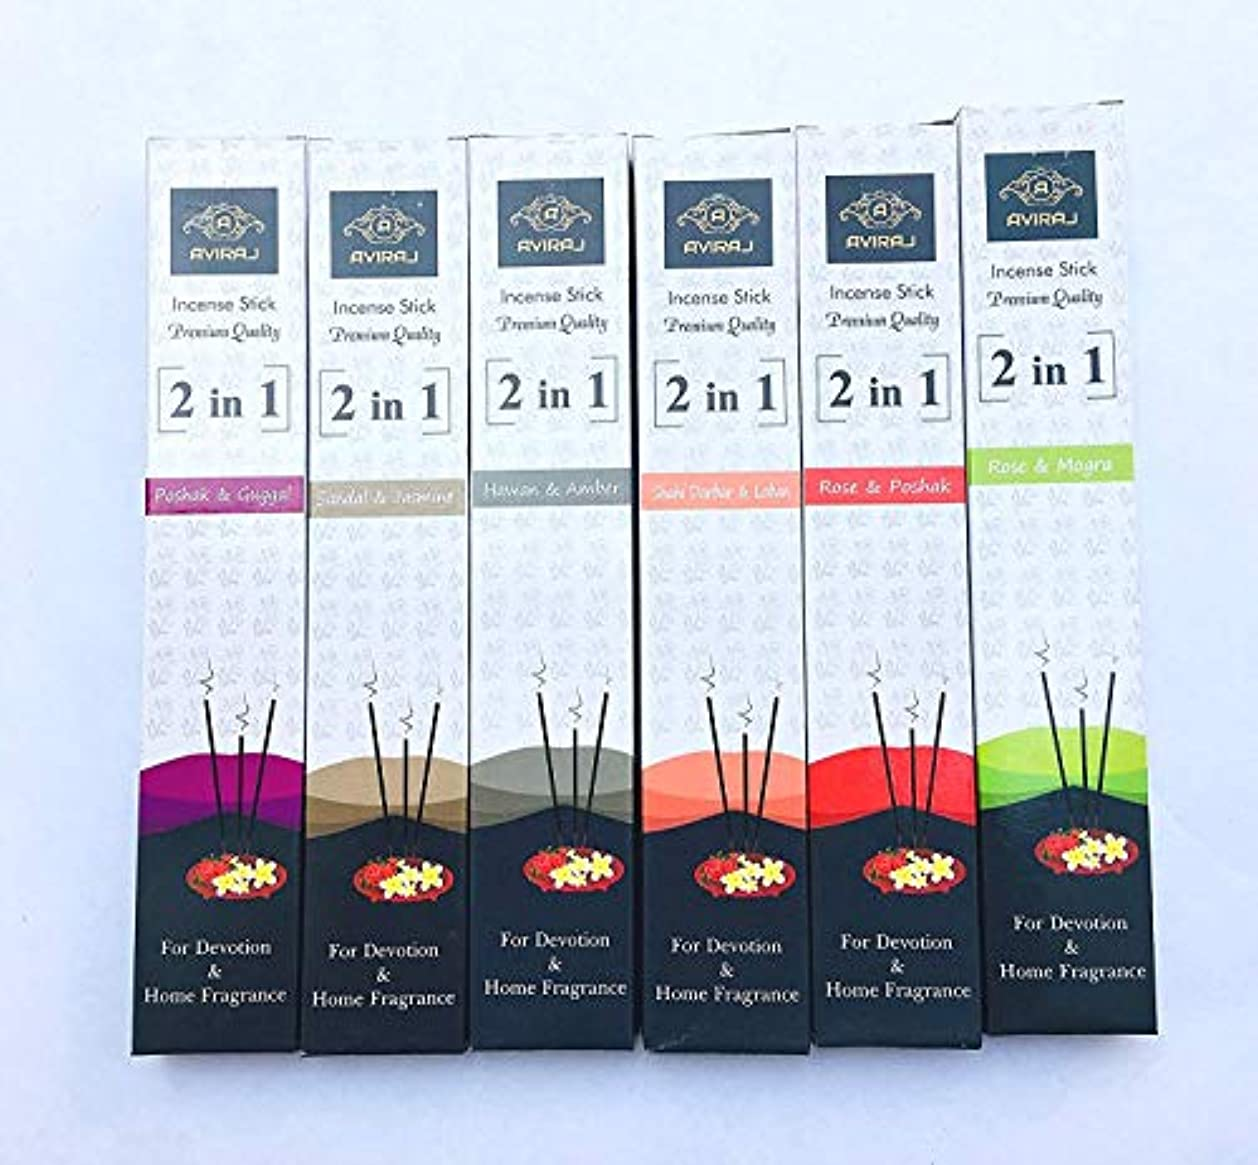 ブーストゲームベッドを作るAviraj Premium Incense Agarbatti Sticks - 2 in 1 (Pack of 6) Use for Devotion, Yoga and home Fragrance